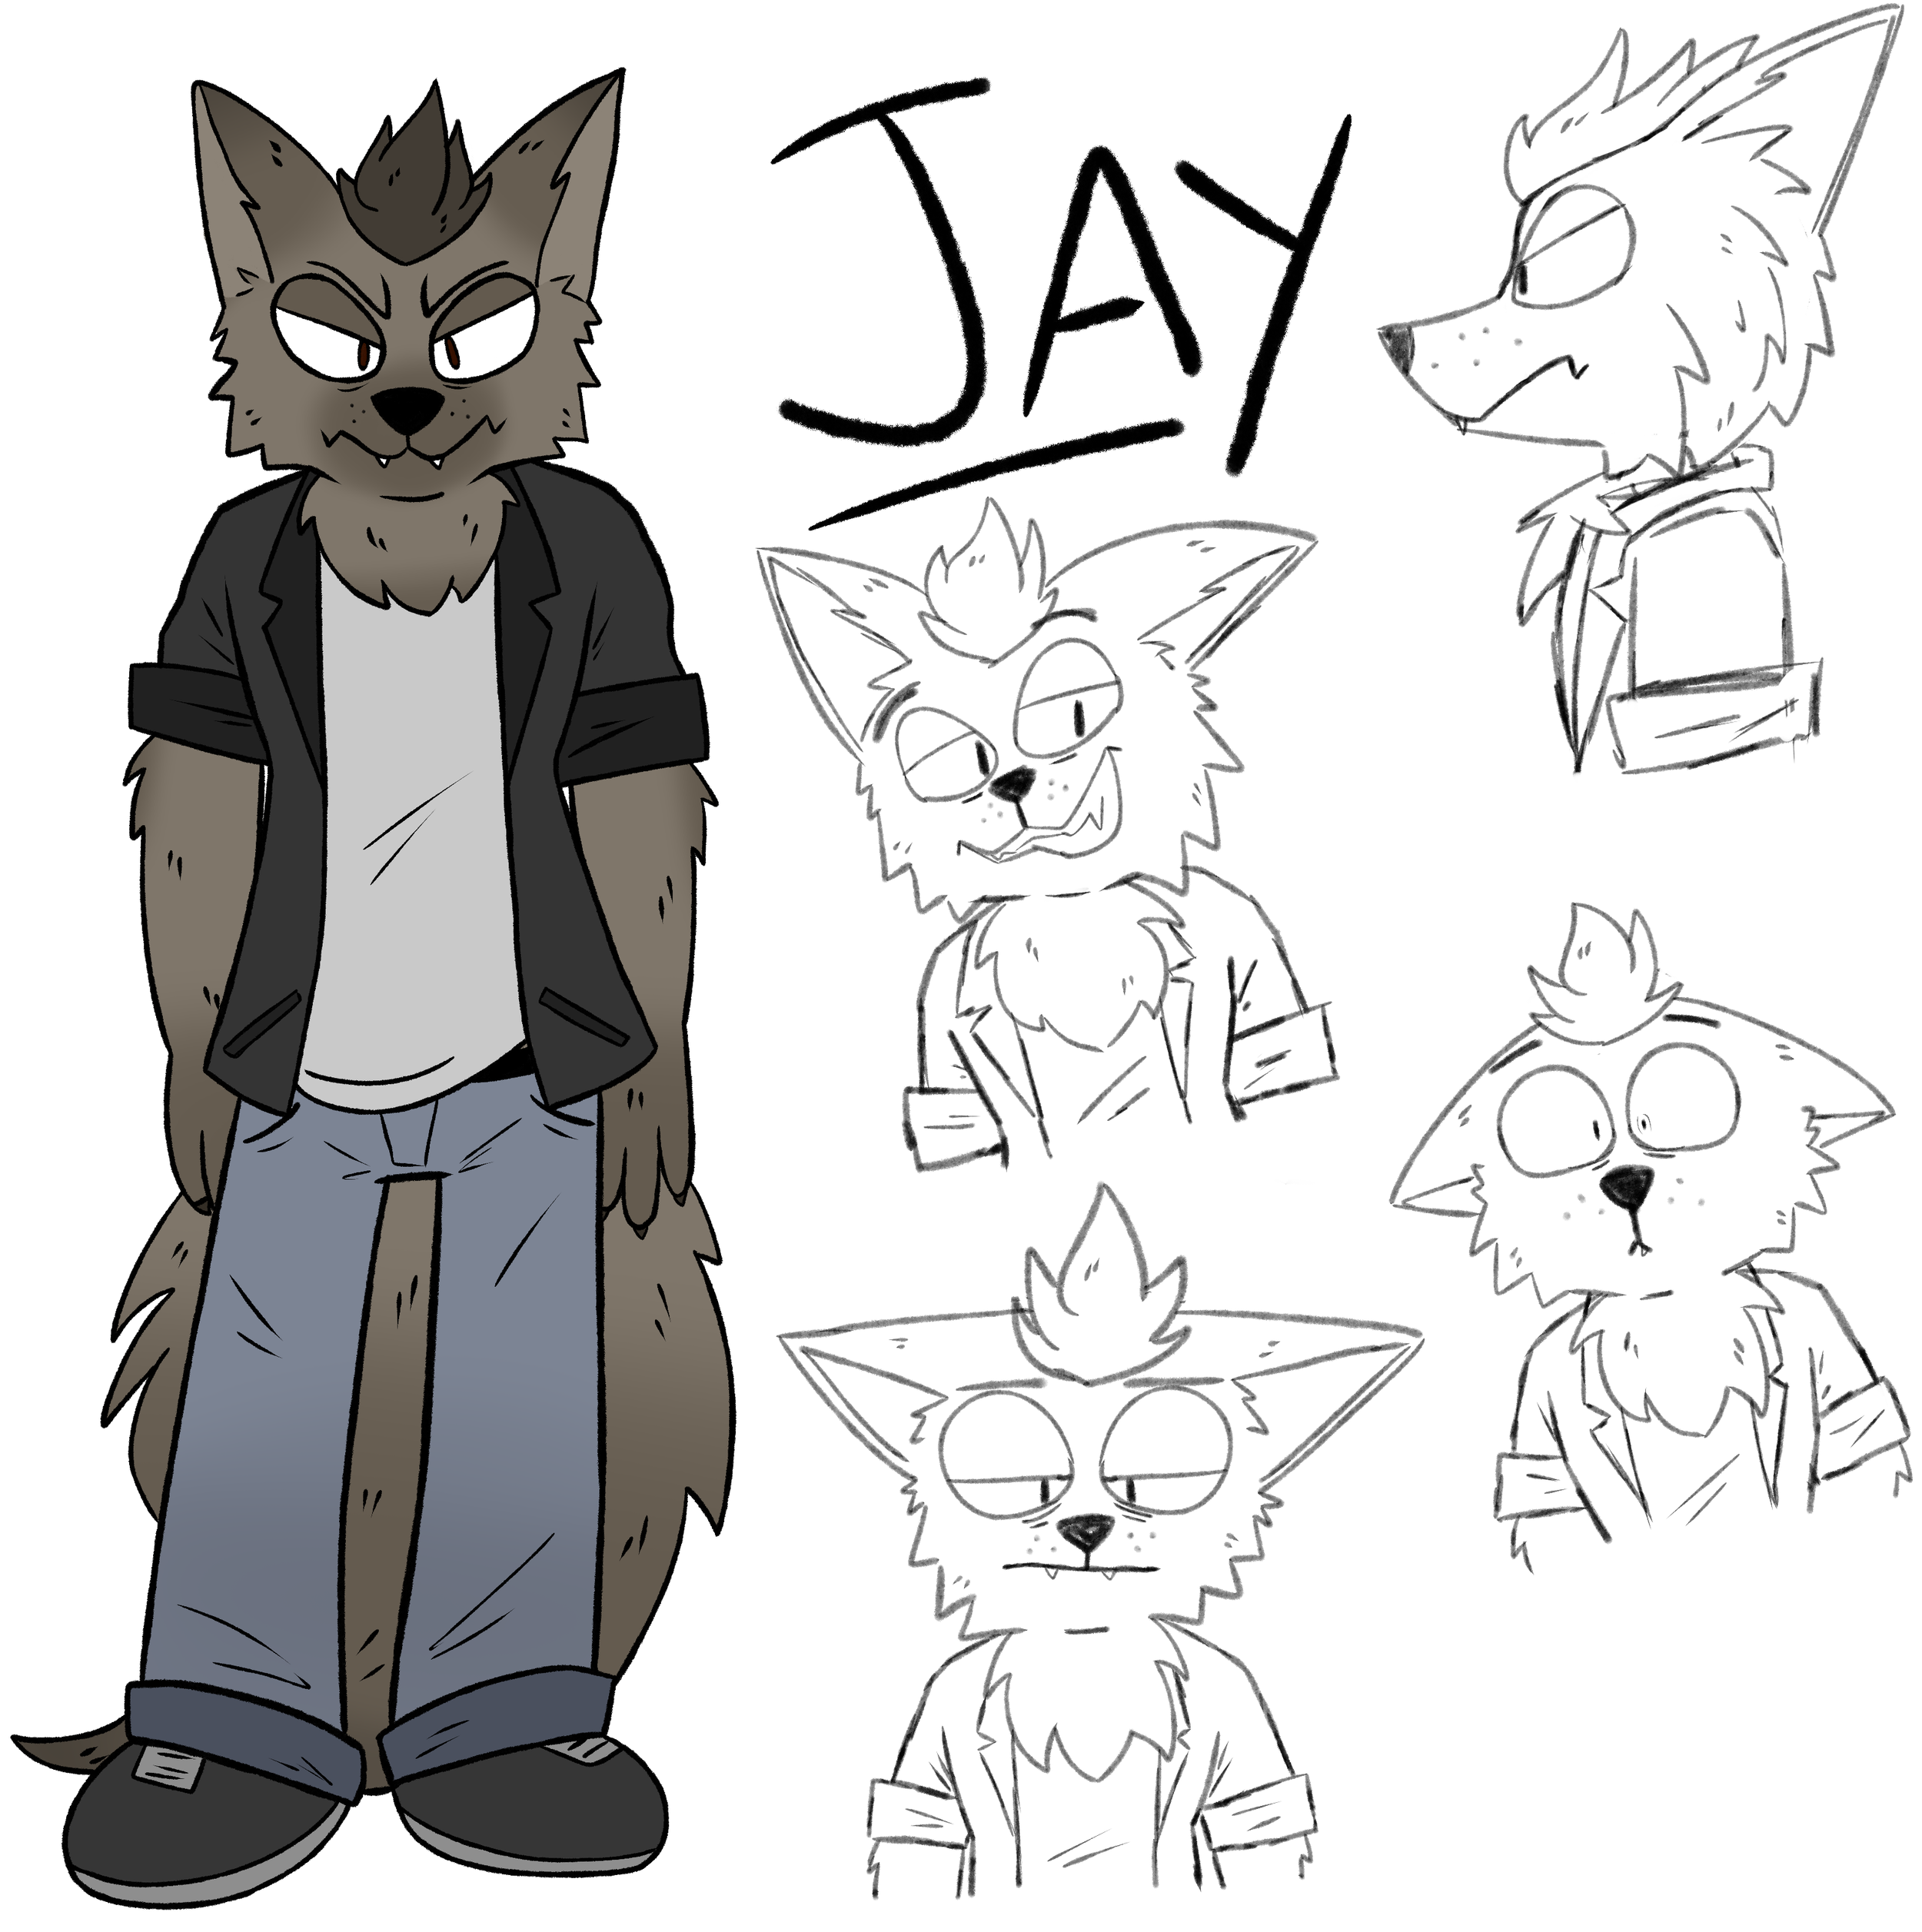 Style test (added to reference) 6